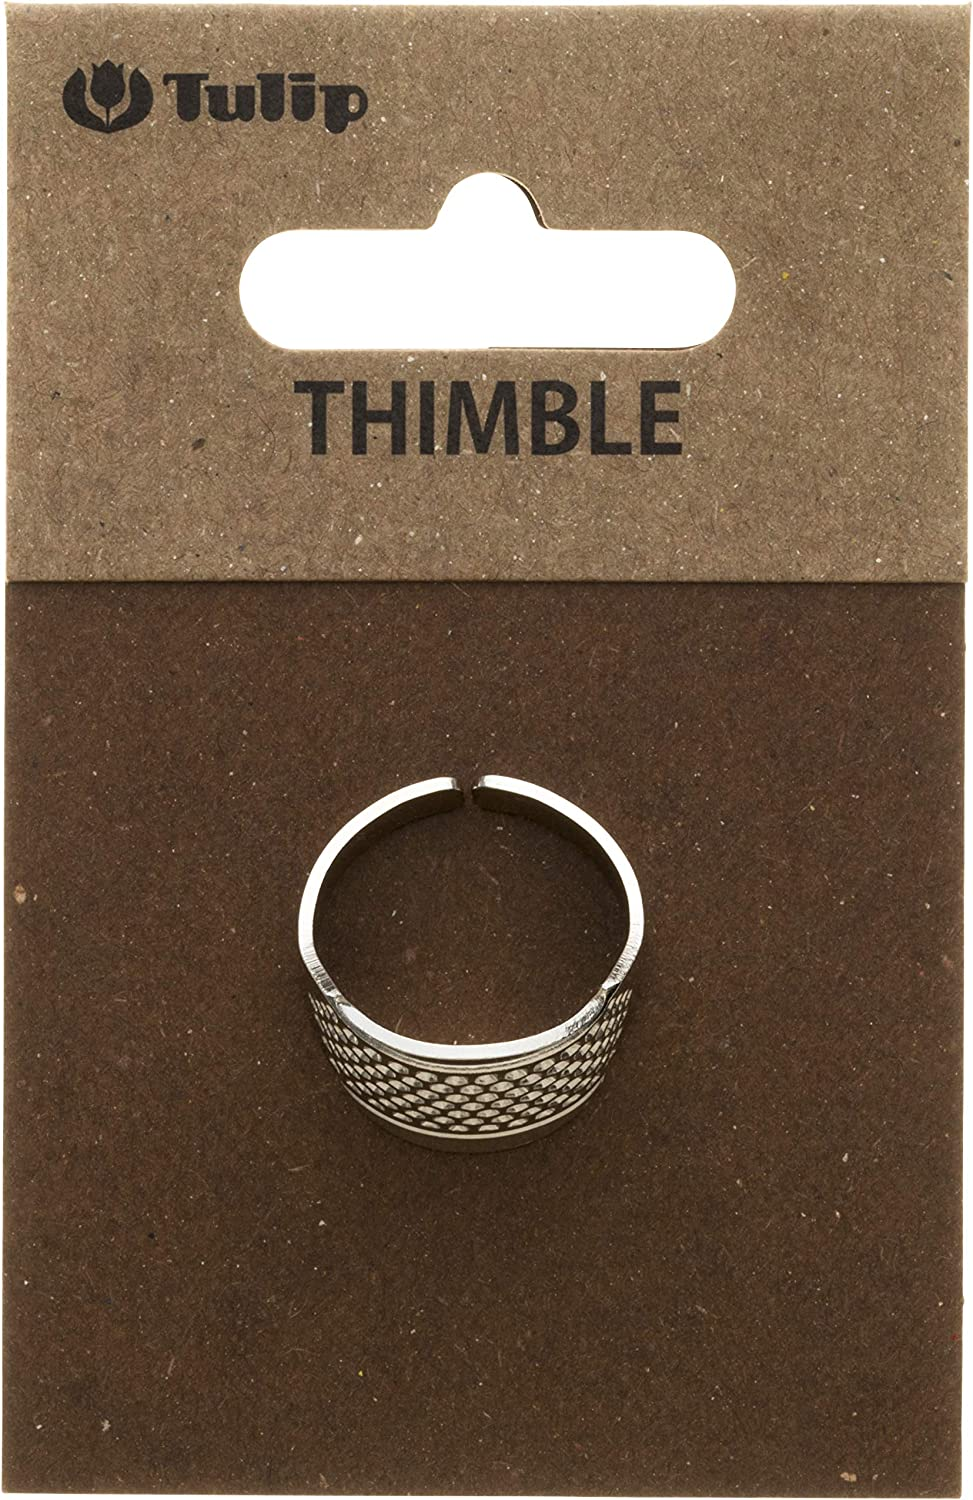 Tulip Company Limited Adjustable Ring Thimbles, None 5